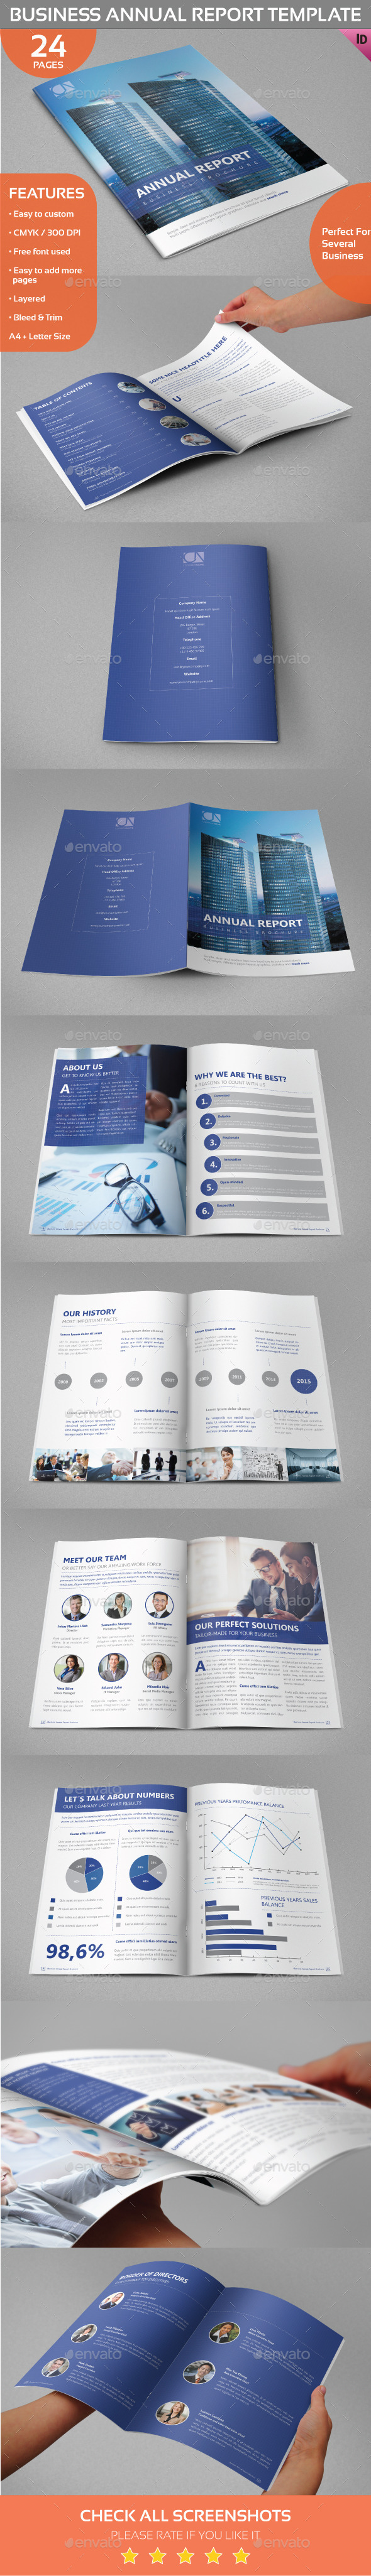 Business Annual Report/Brochure Template - Informational Brochures